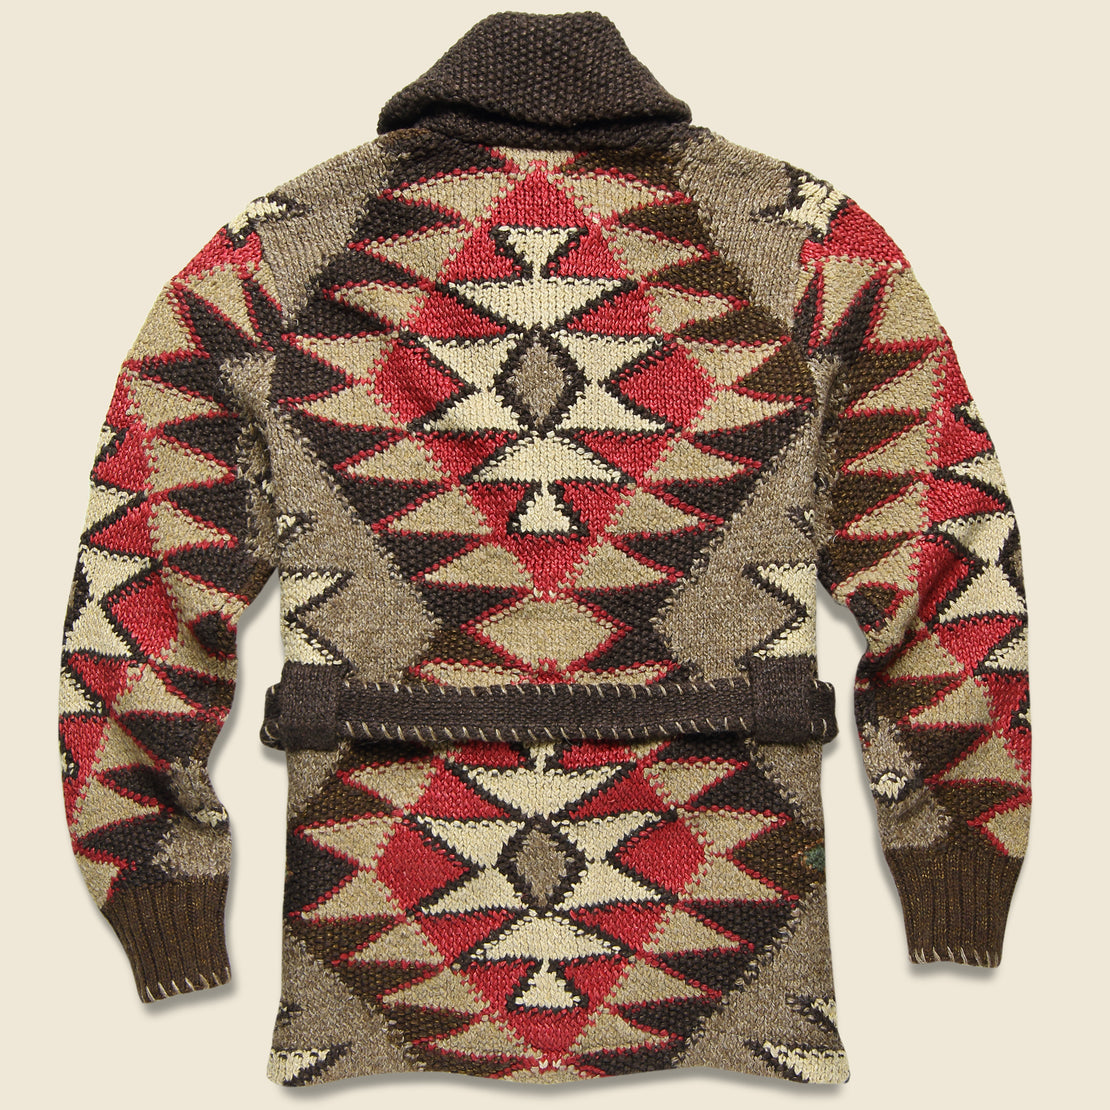 Hand-Knit Ranch Cardigan - Brown